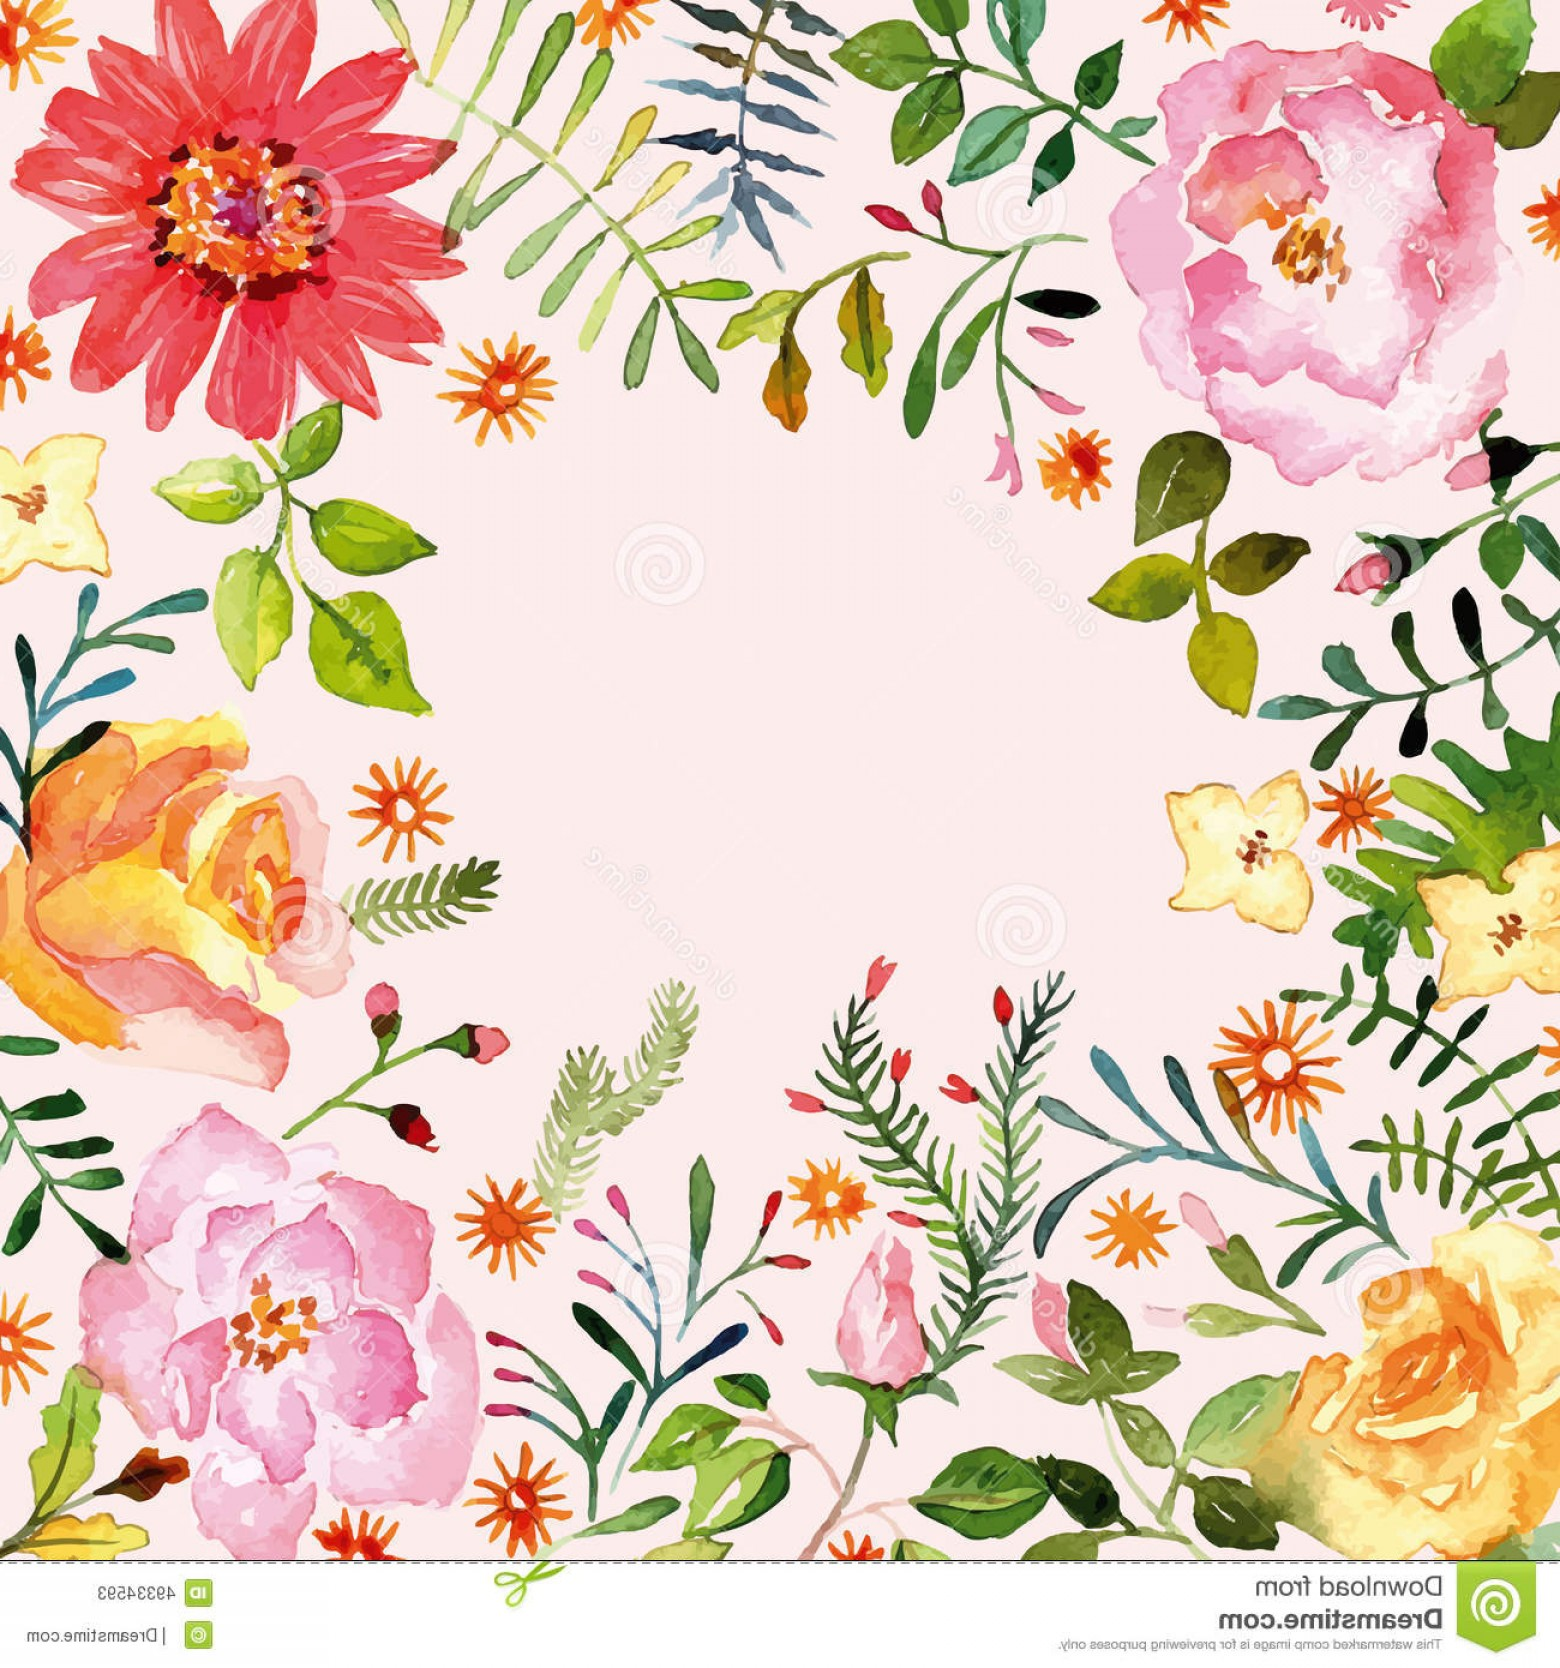 Stock Illustration Watercolor Floral Ornament Spring Flowers